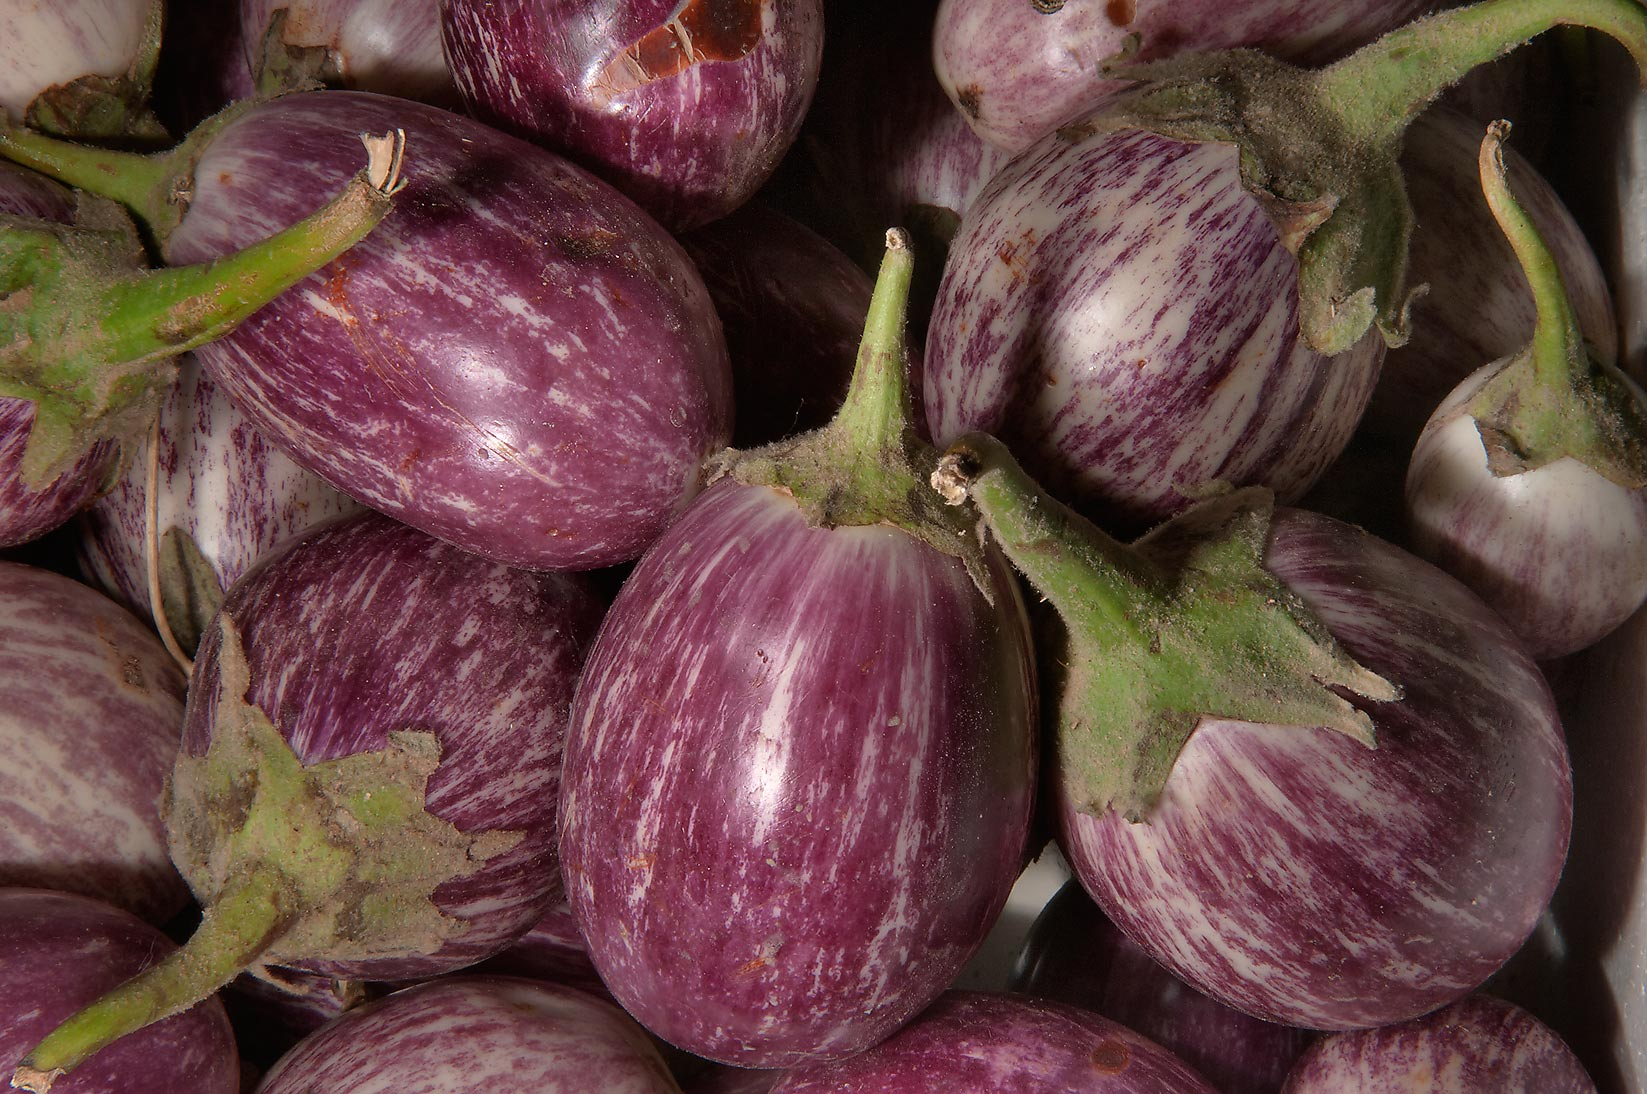 Eggplant in Vegetable Market, Wholesale Markets area. Doha, Qatar